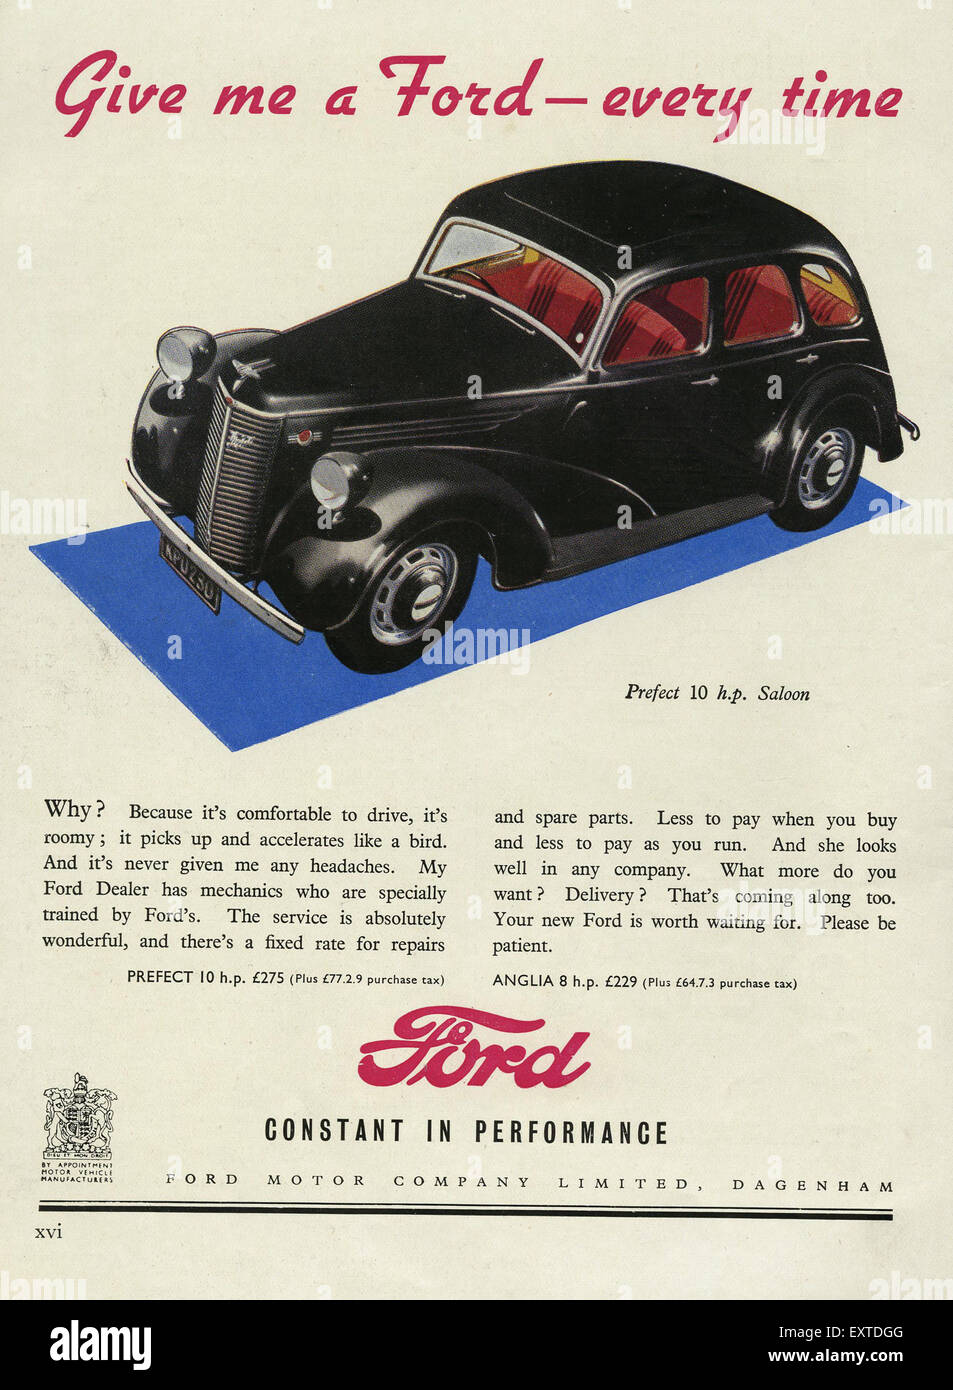 1950s Ford Stock Photos & 1950s Ford Stock Images - Alamy